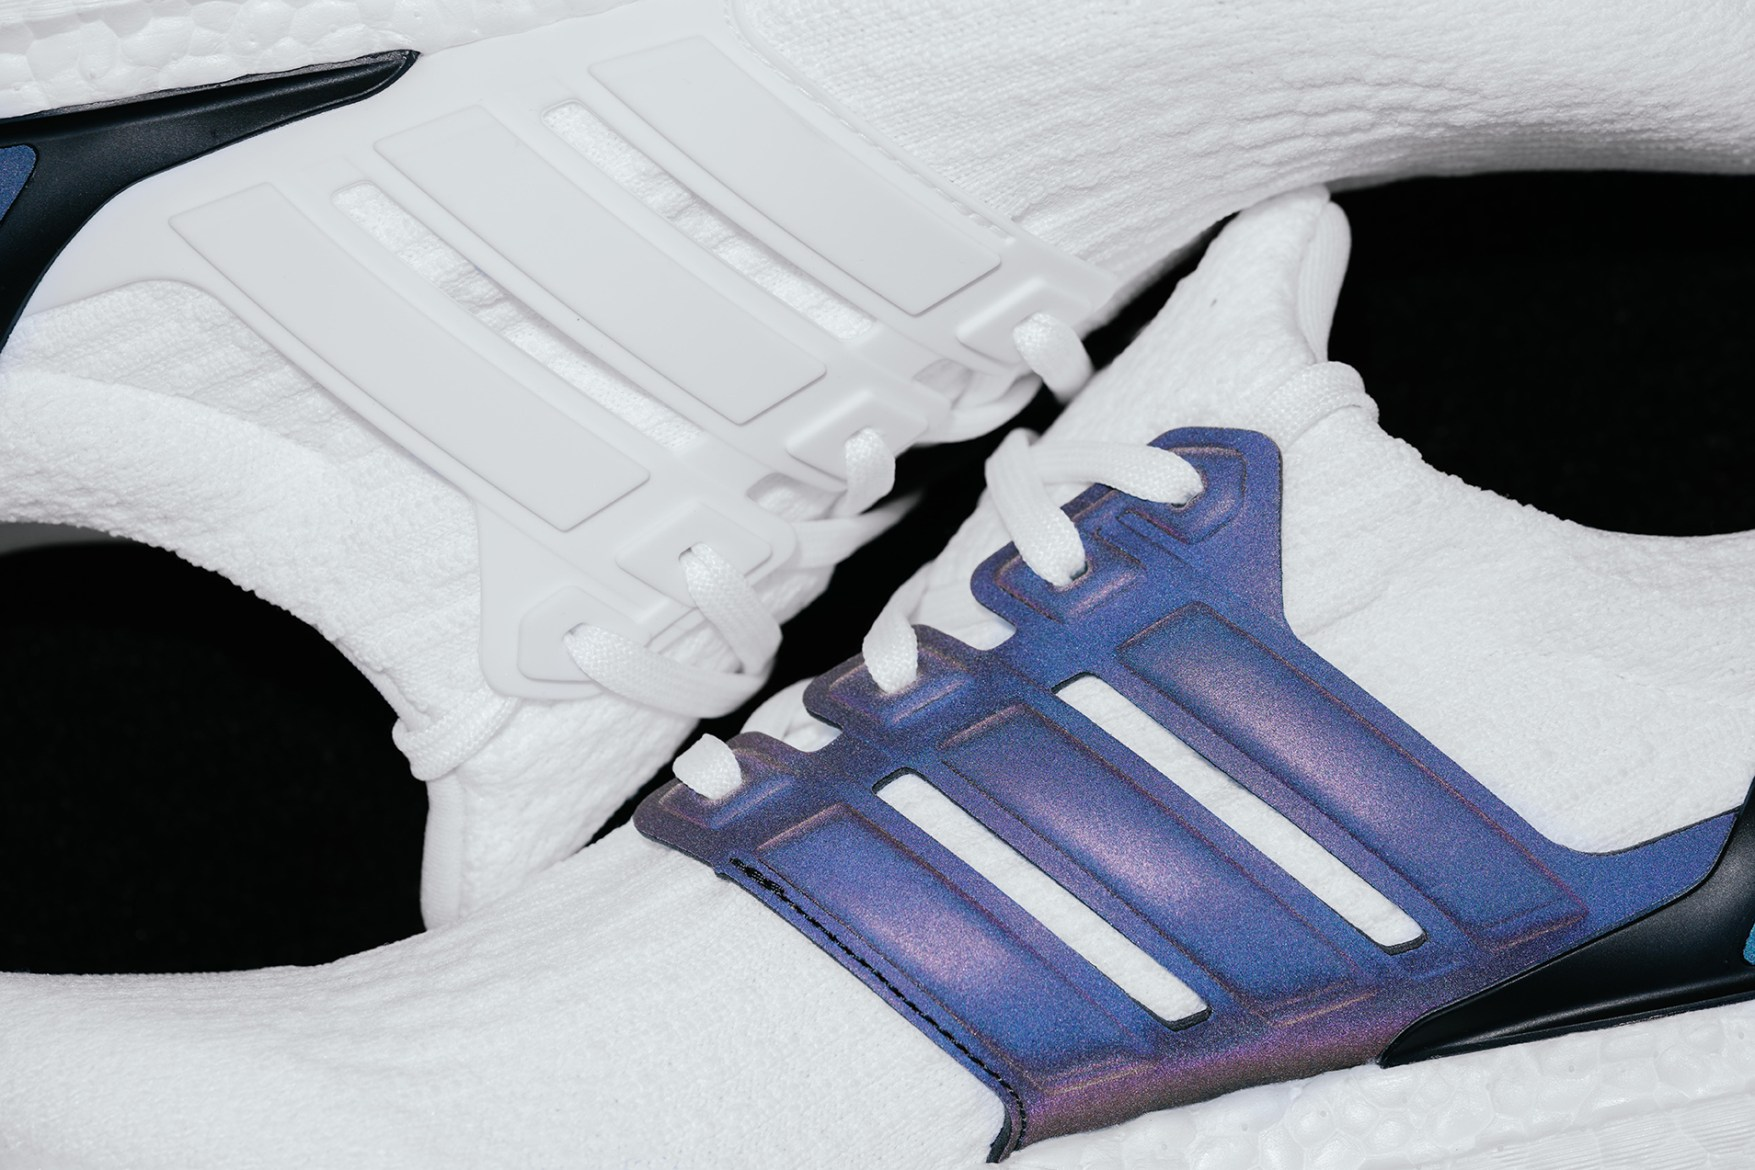 DOE reunites with adidas for another UltraBOOST Xeno